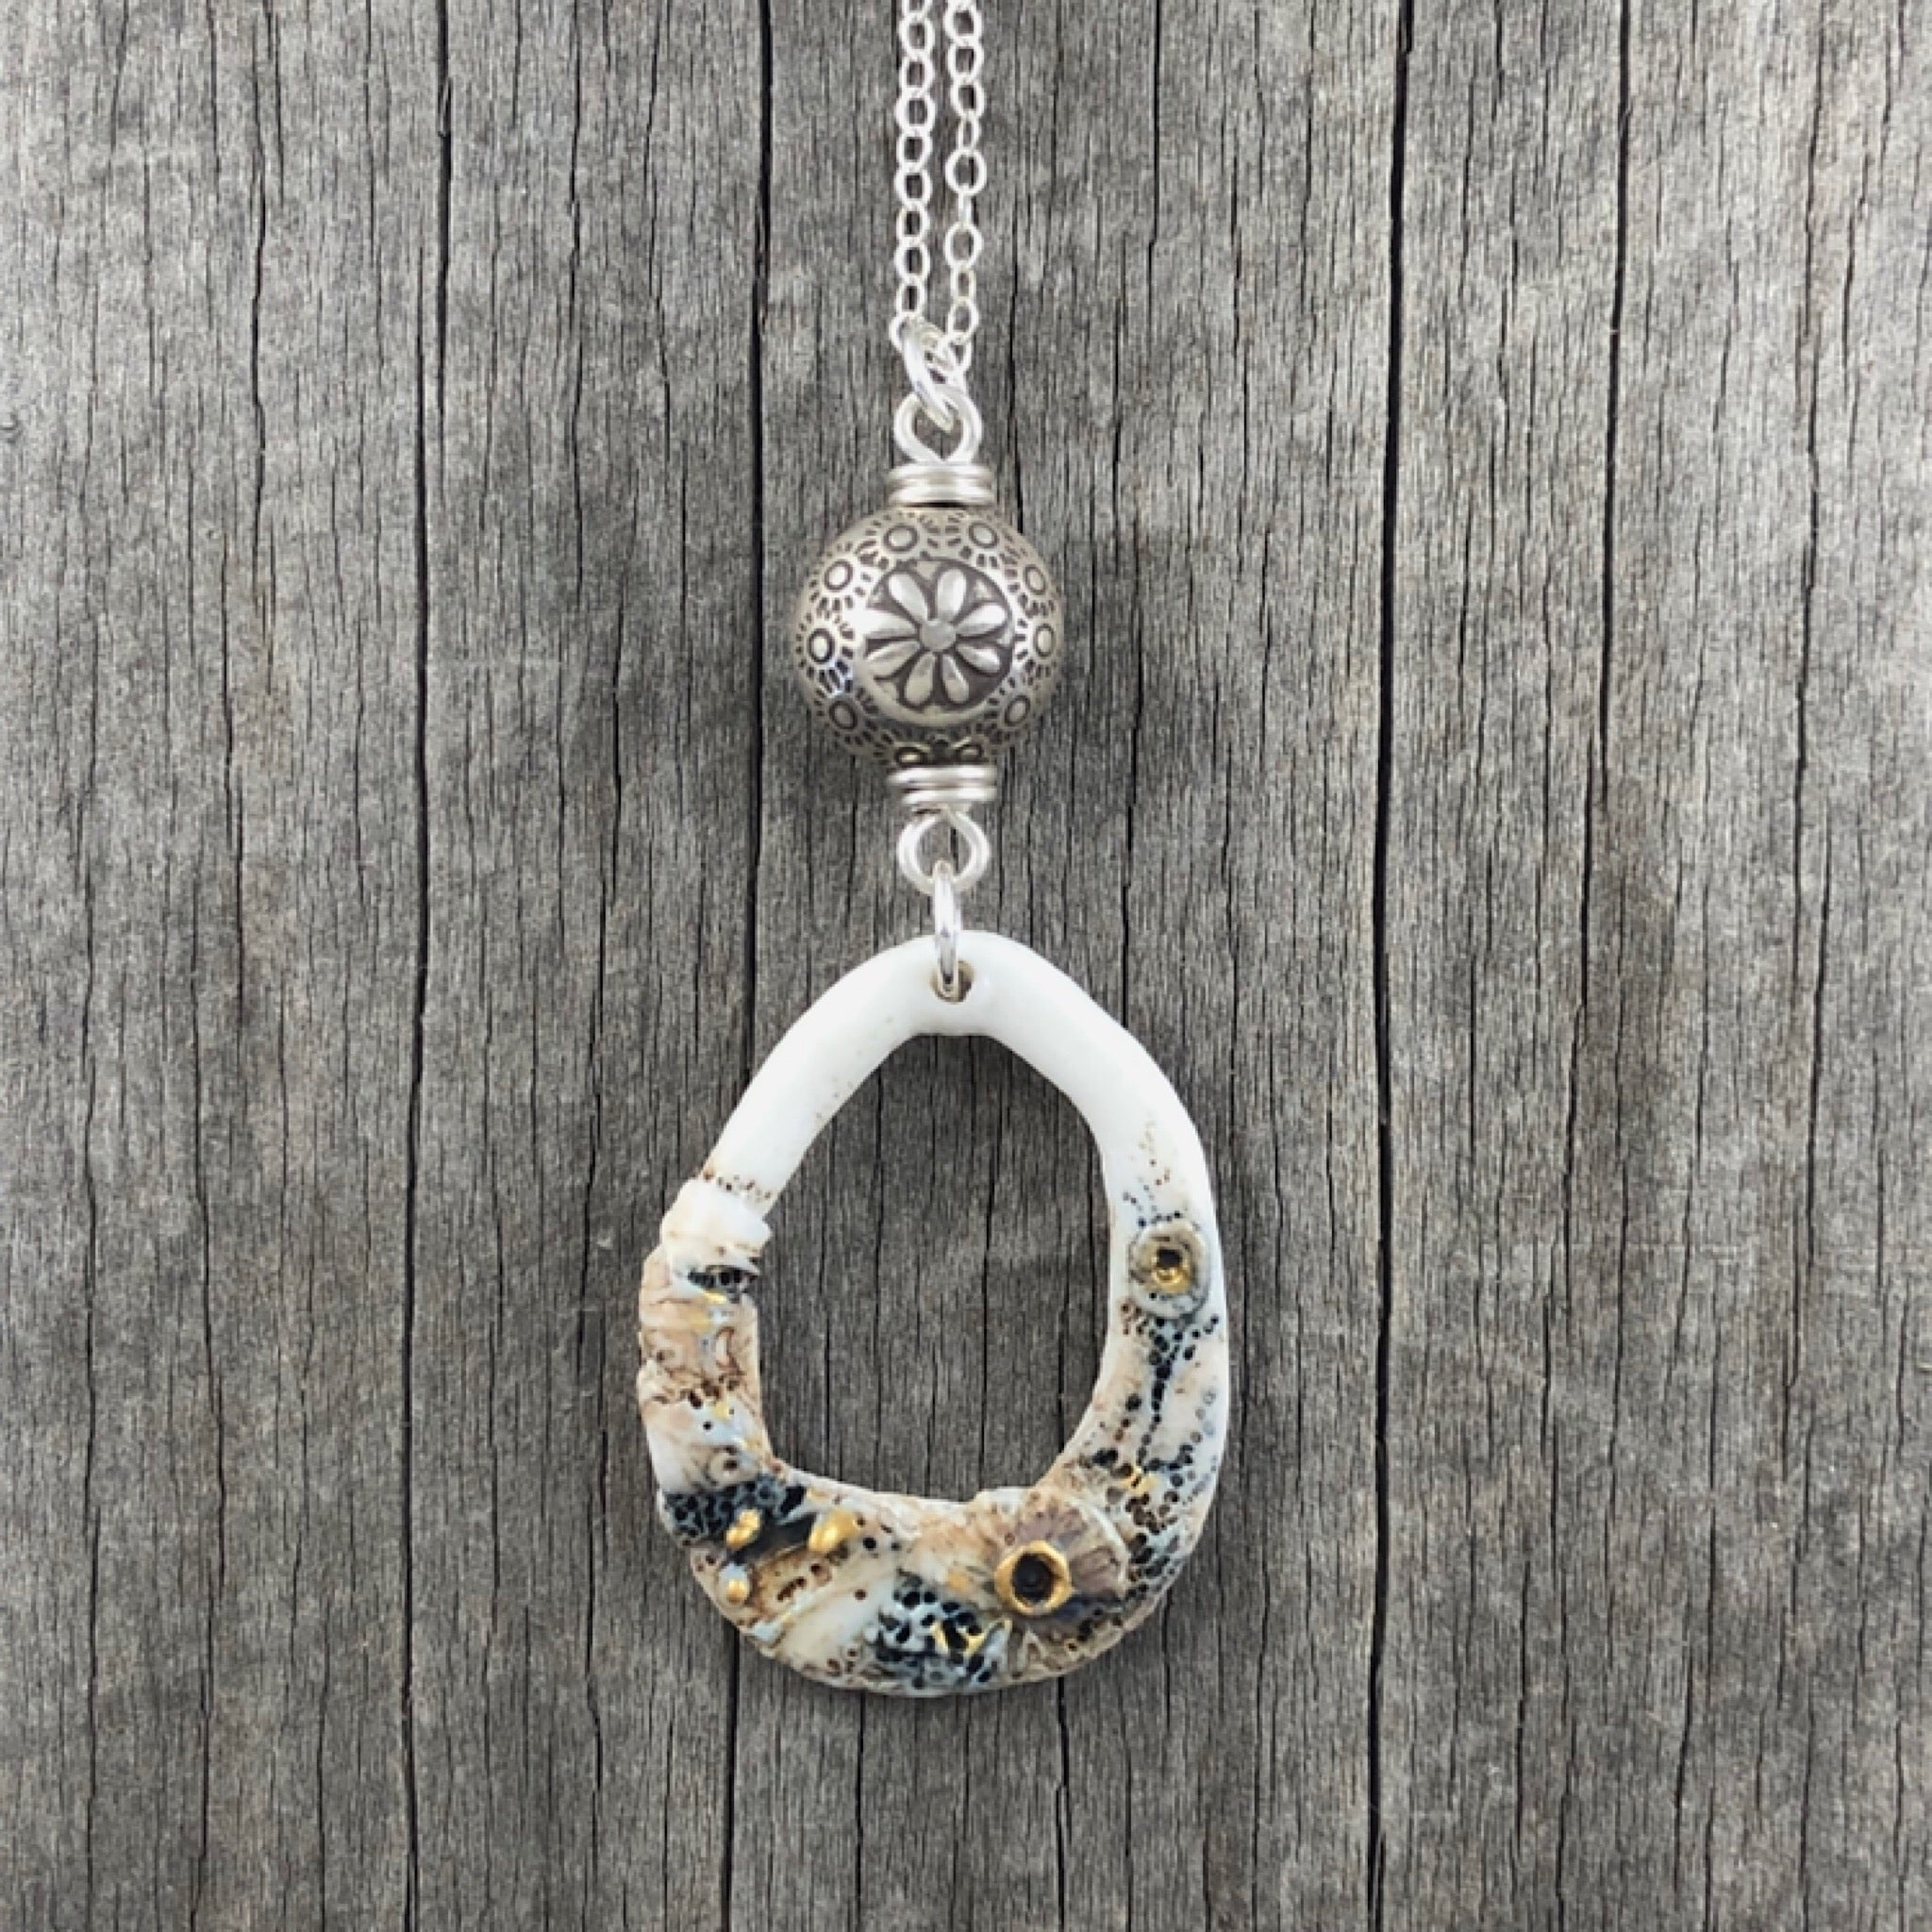 Organic Porcelain Necklace